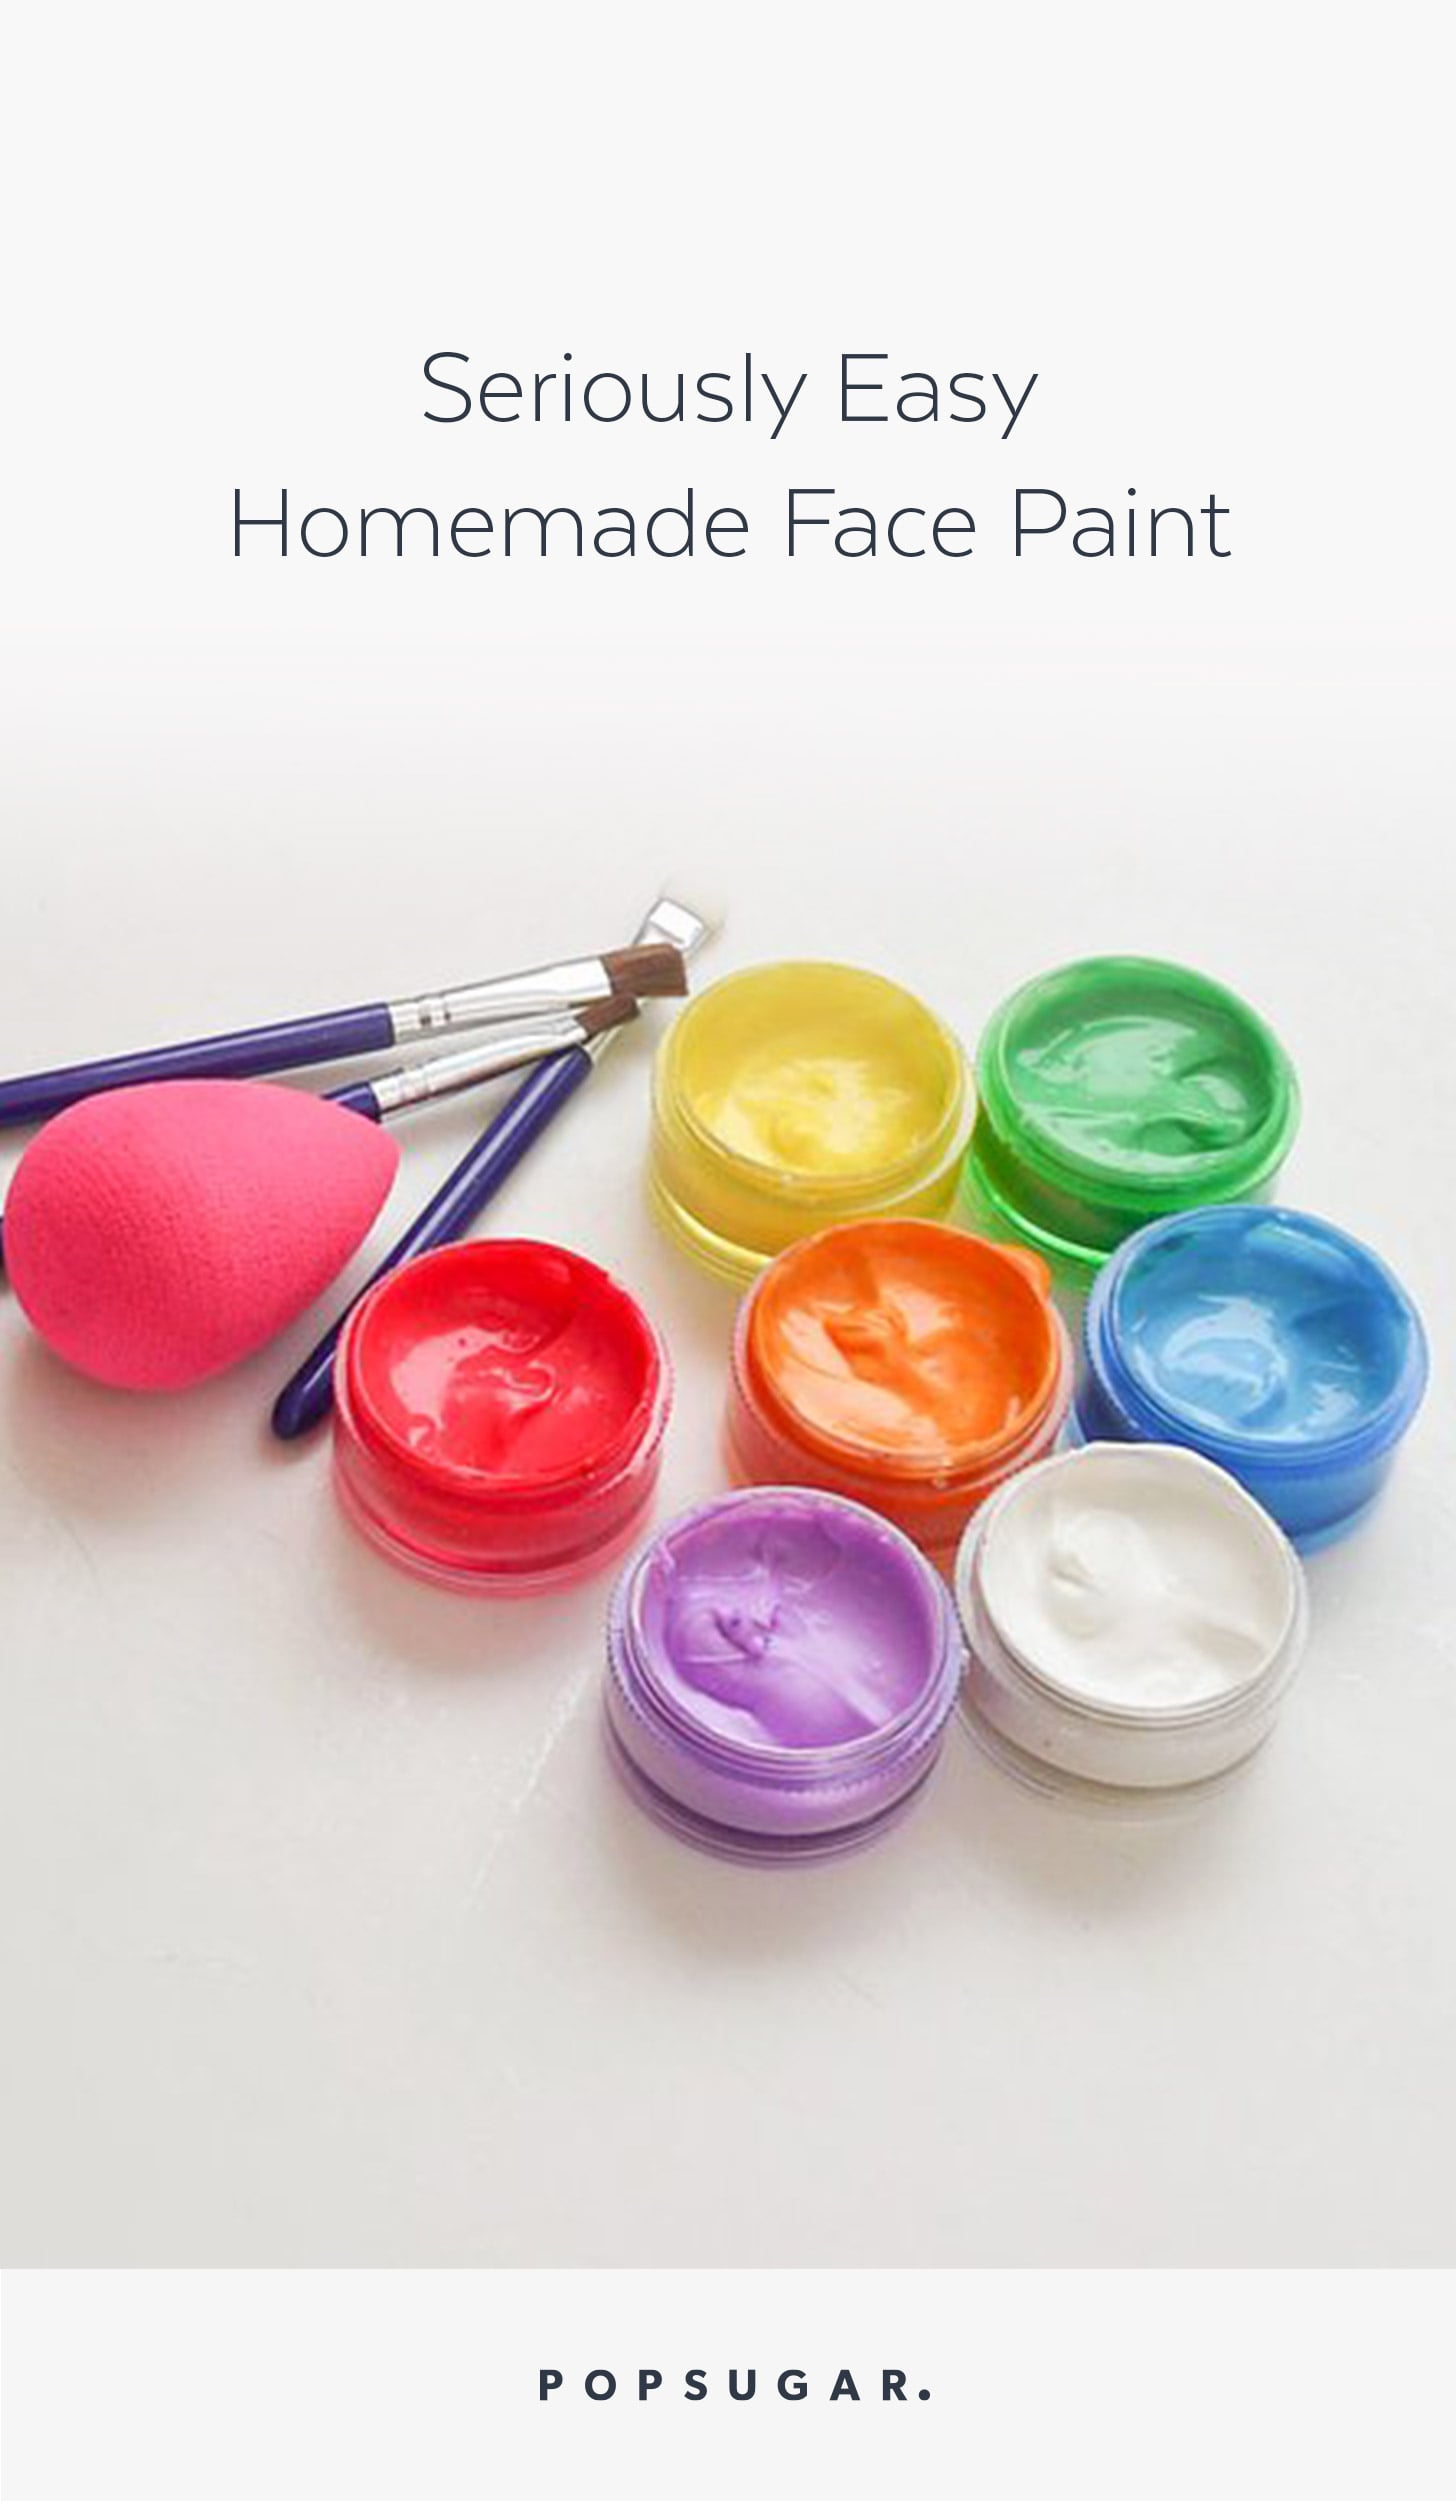 Homemade face paints popsugar smart living 31 last minute halloween costumes for women solutioingenieria Image collections